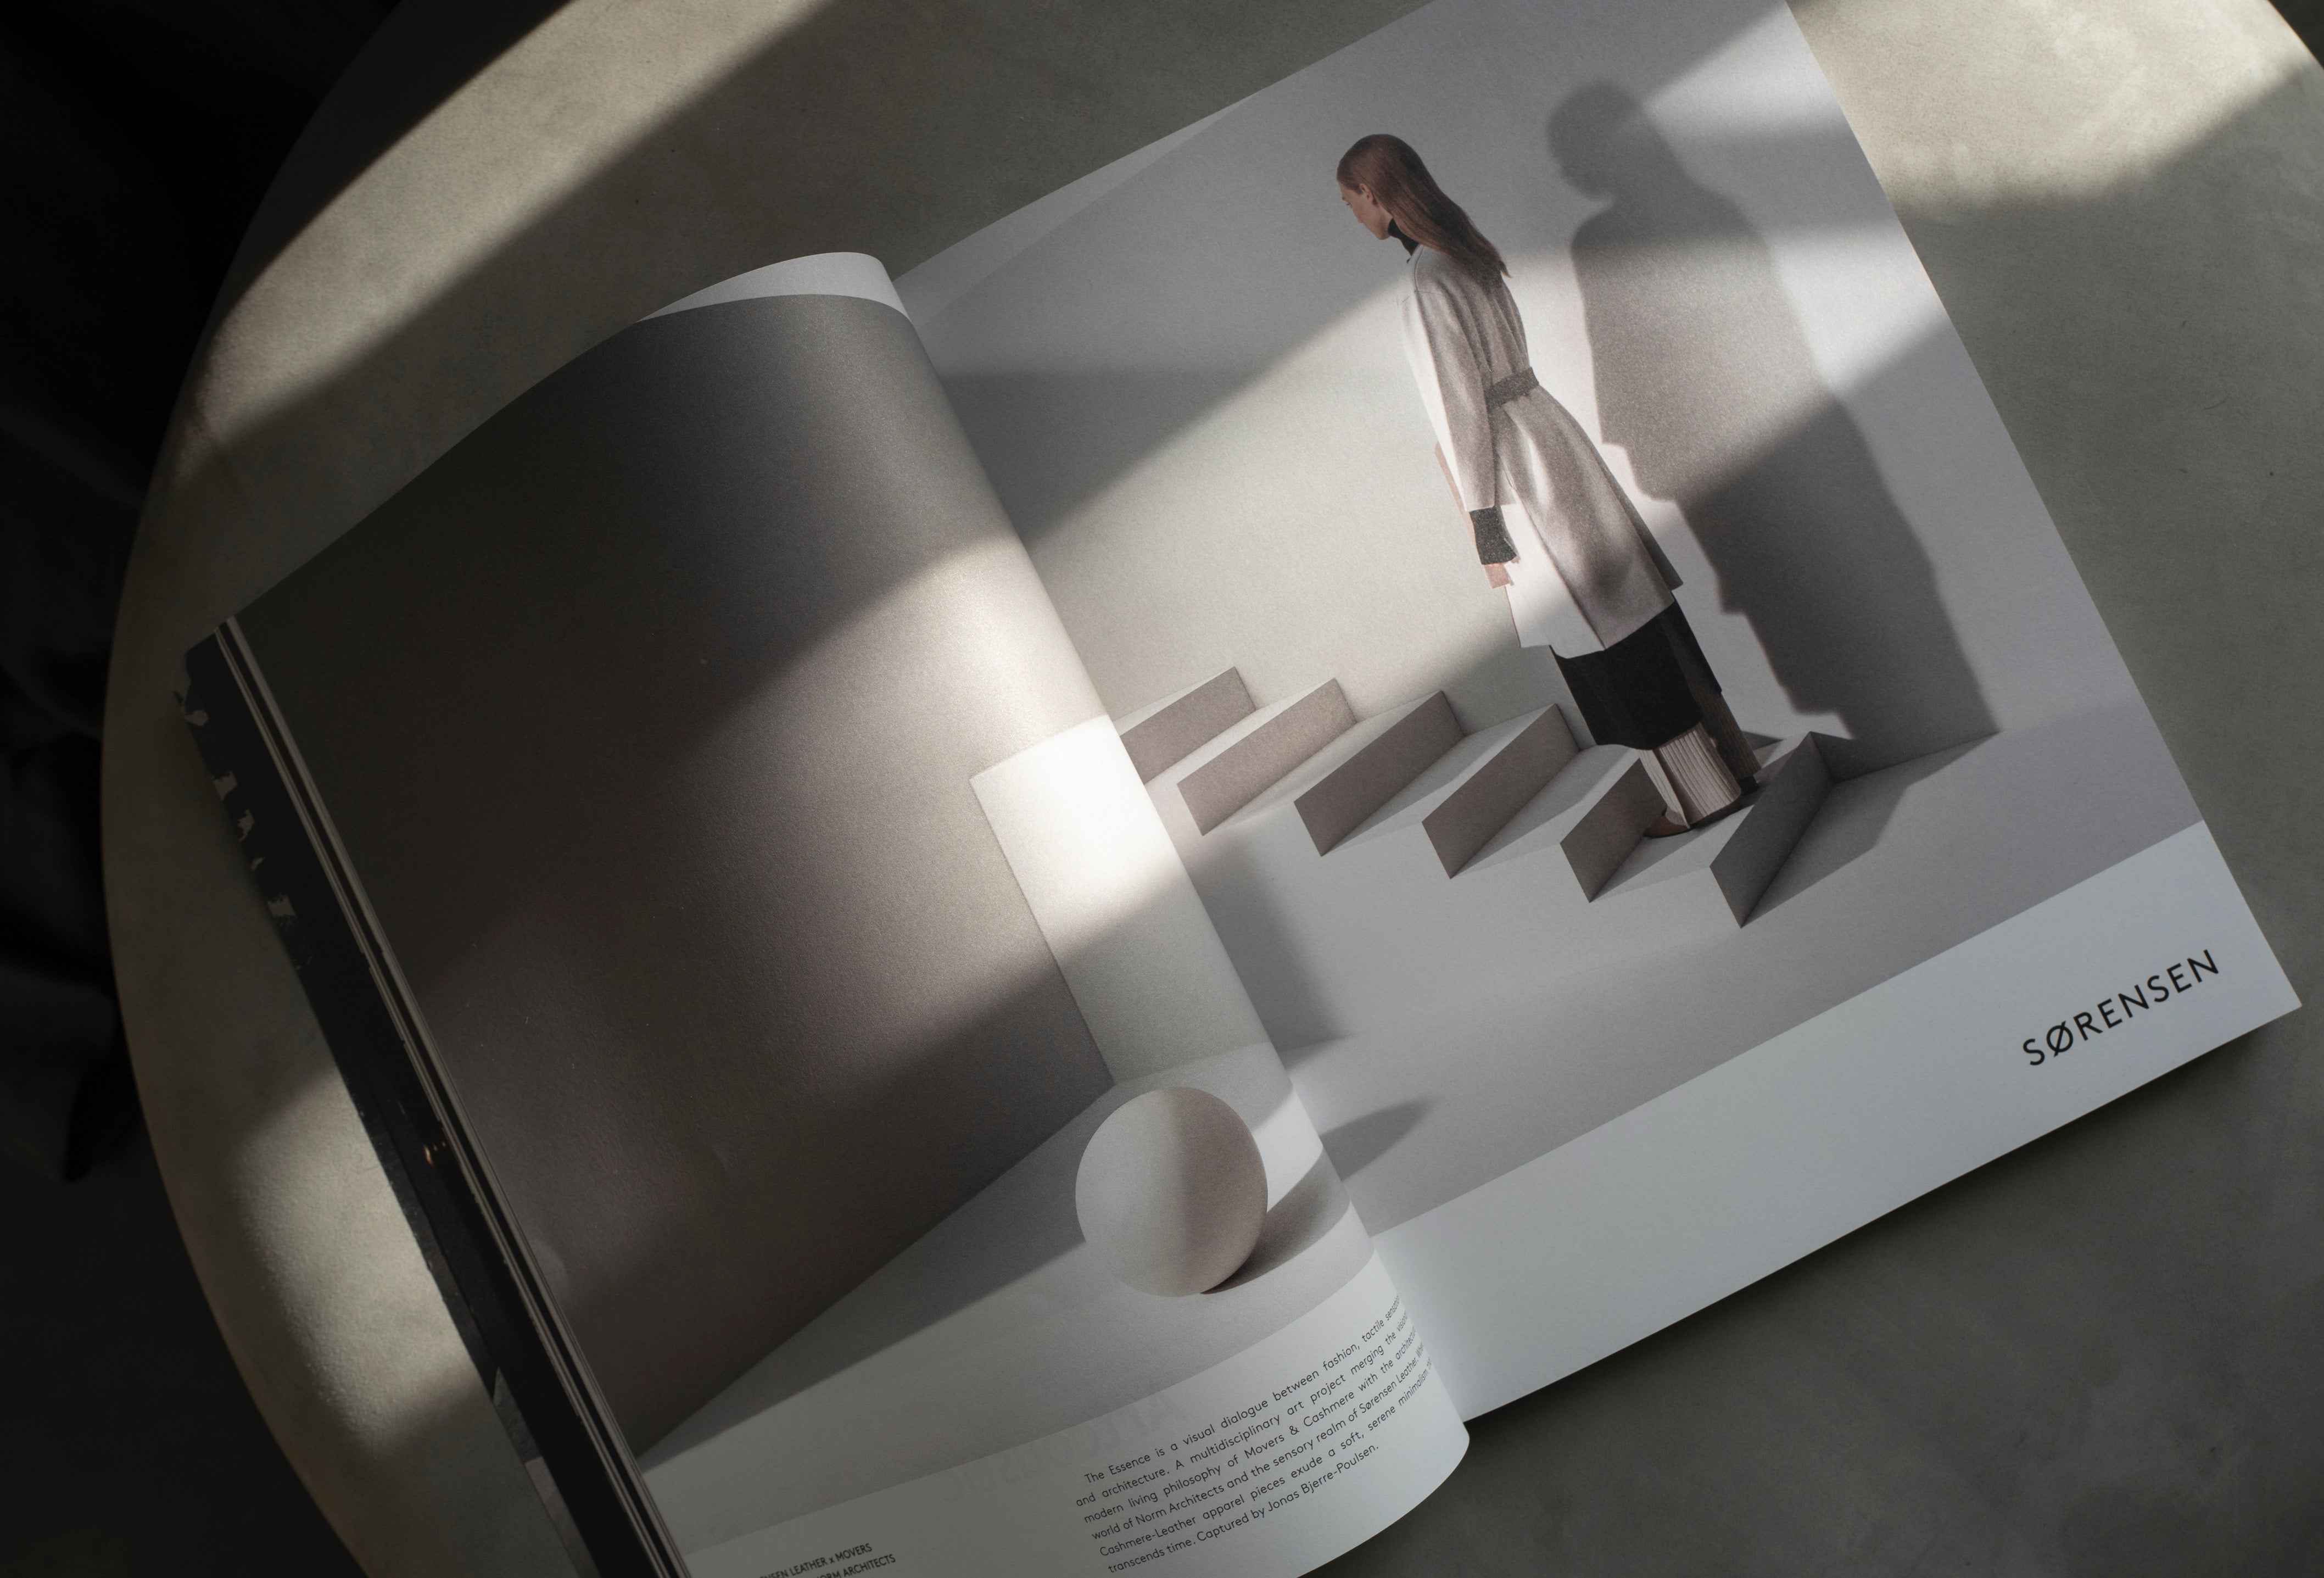 Movers & Cashmere Sorensen Leather Norm Architects - Ark Journal Copenhagen Autumn Winter 2019